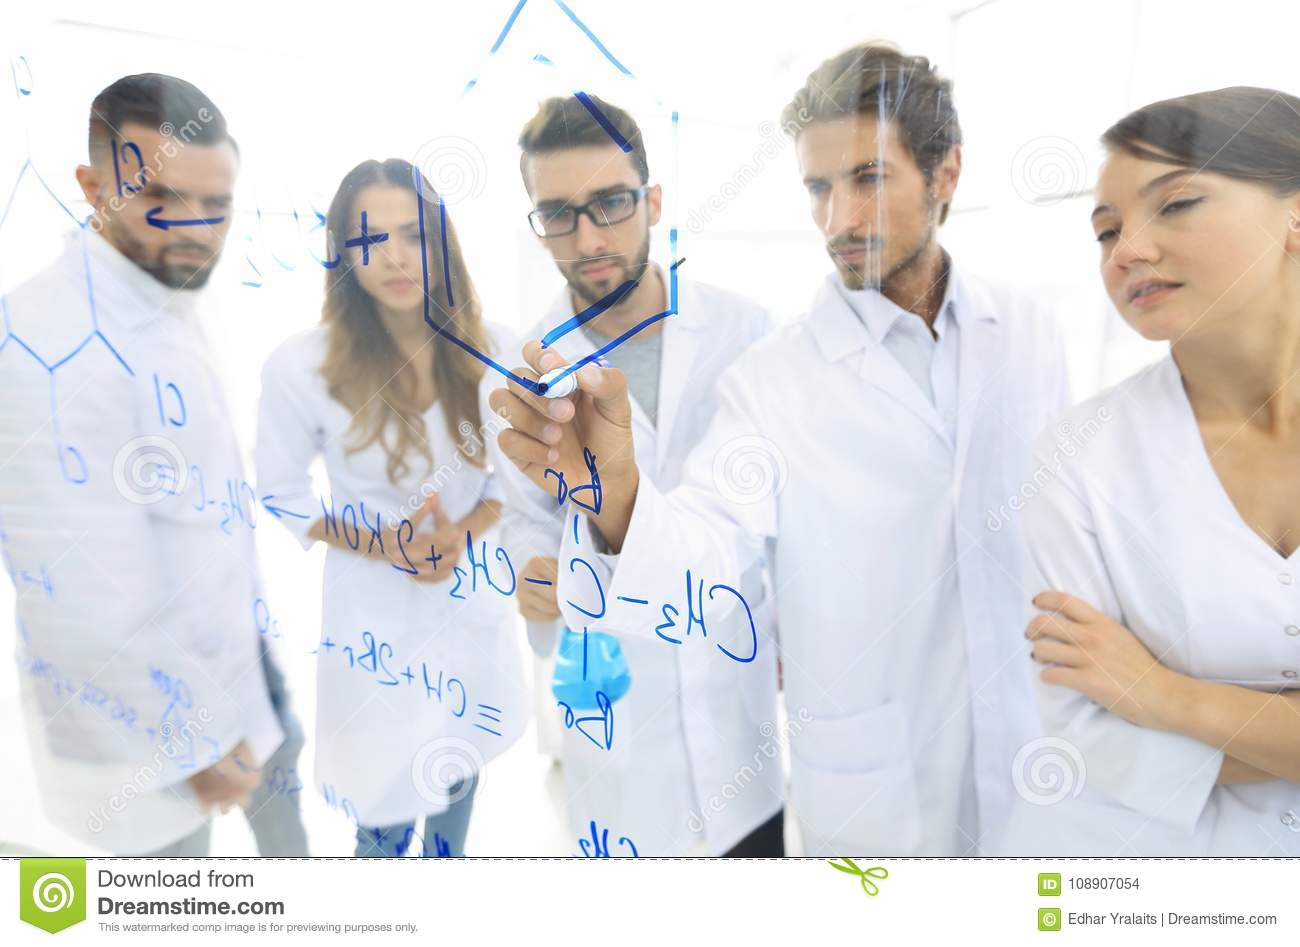 General-view seen trough a transparent board in a chemistry lab of people analyzing information